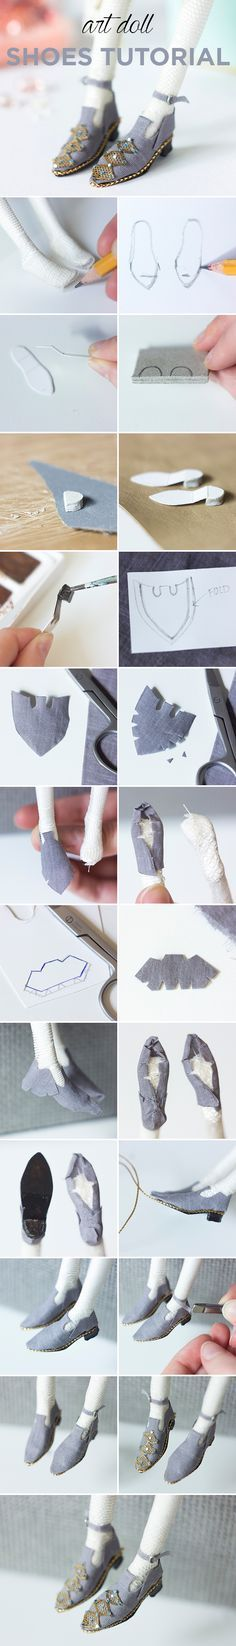 Miniature art doll shoes tutorial by Adele Po.